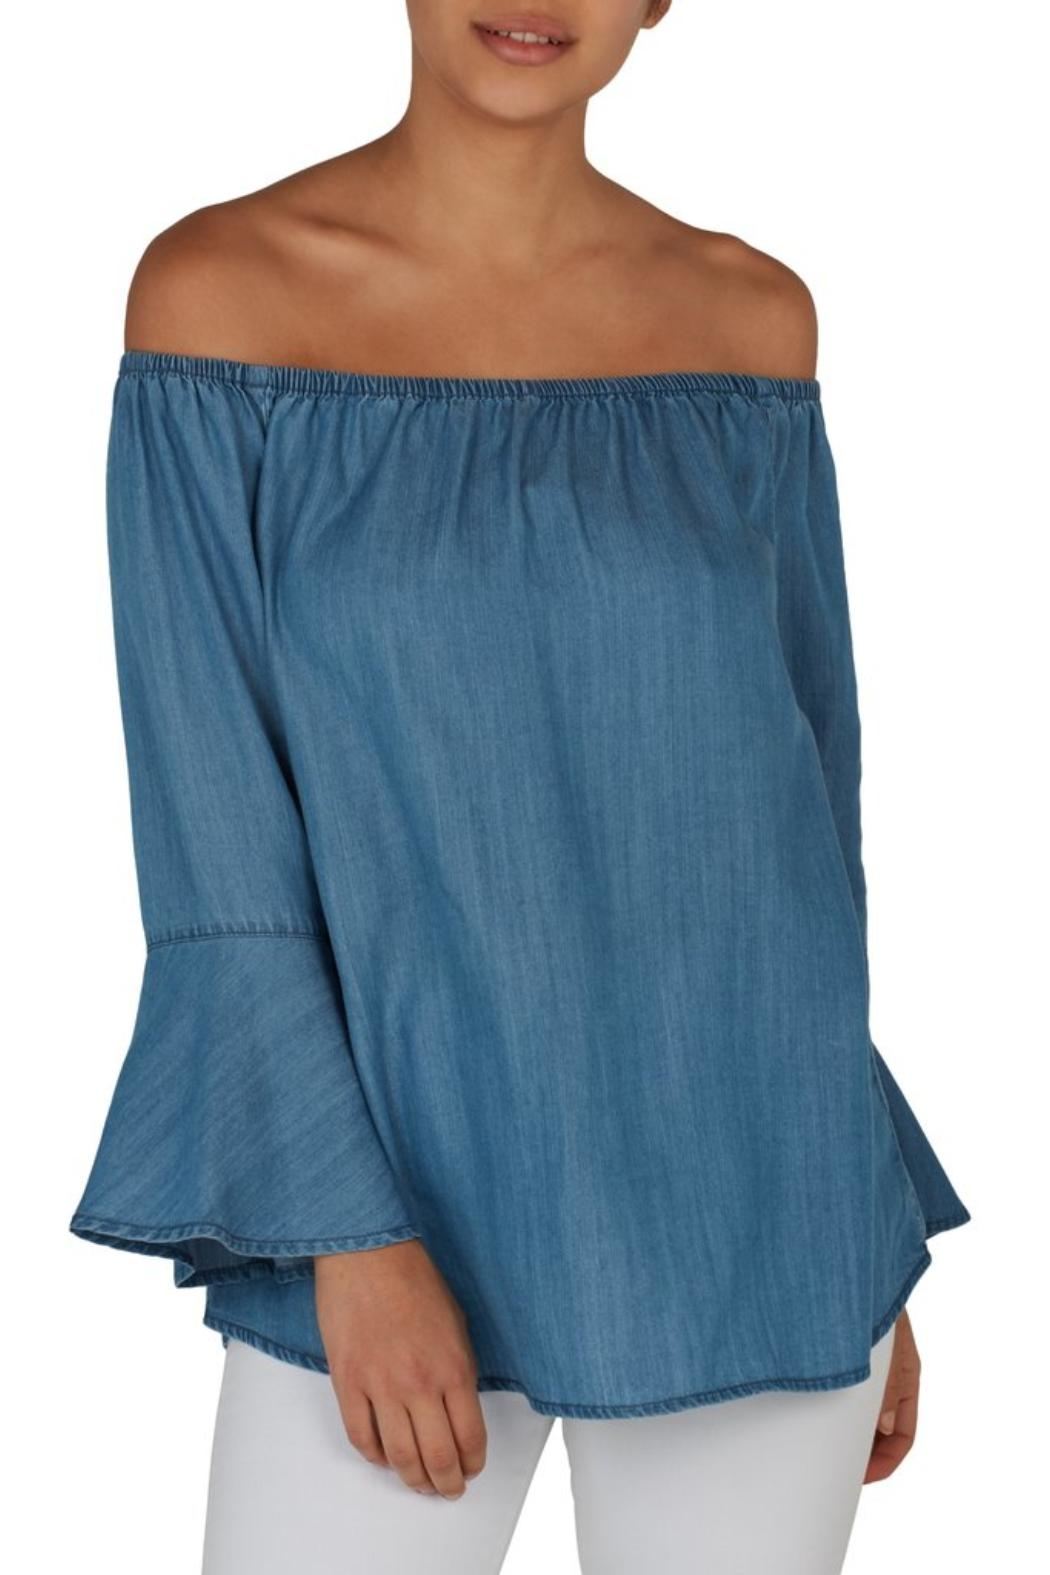 61c59c14c9 Beach Lunch Lounge Denim Top from Westhampton Beach by Chic — Shoptiques